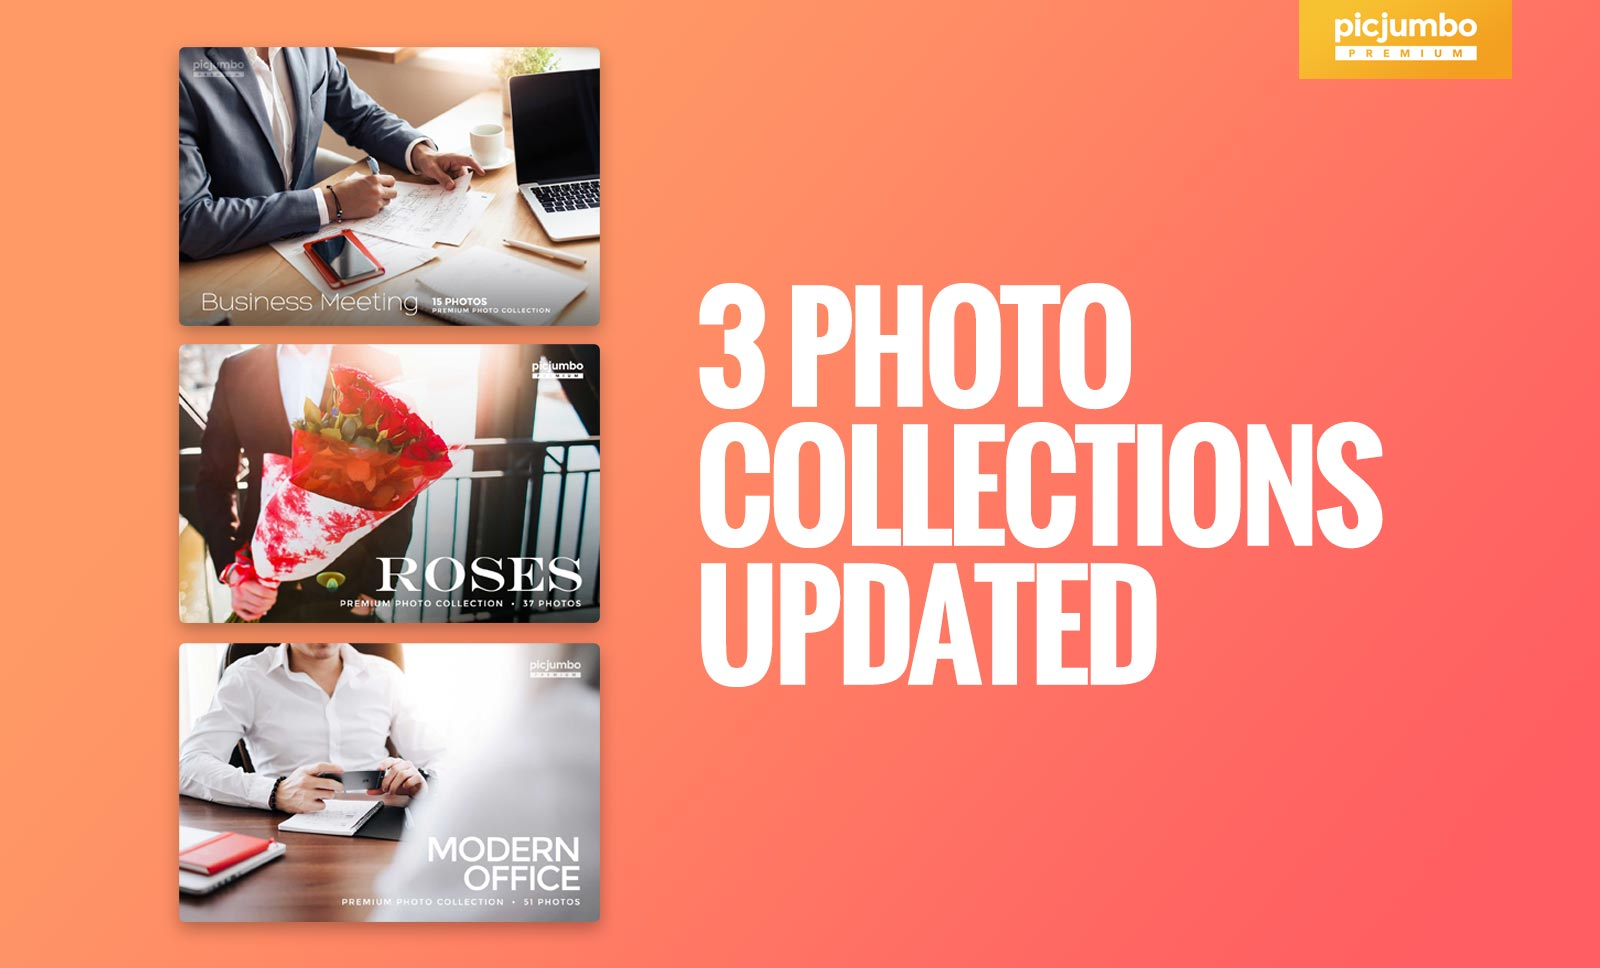 3 PREMIUM Photo Collections Updated! — picjumbo BLOG